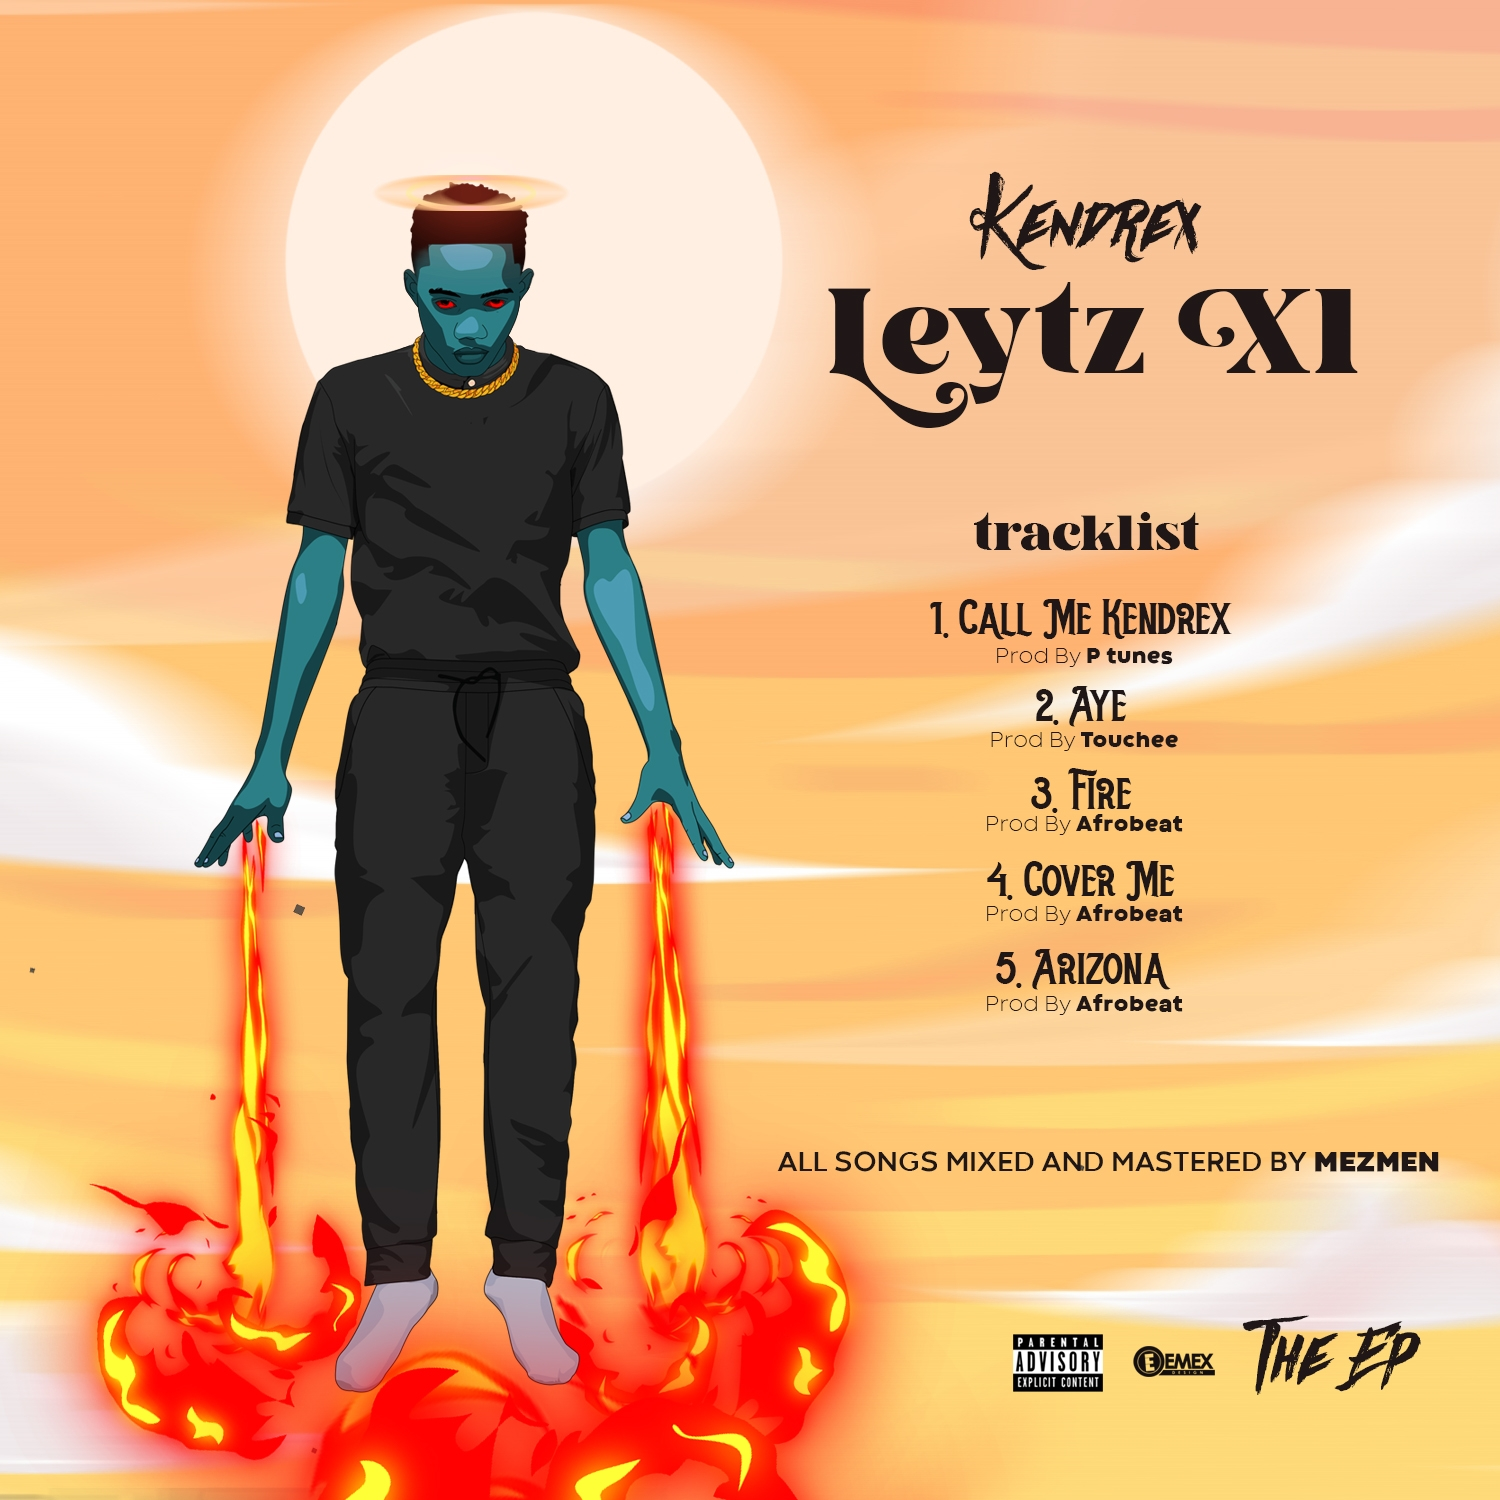 """Kendrex unveil artwork for his upcoming EP project title """"LEYTZ XL"""""""